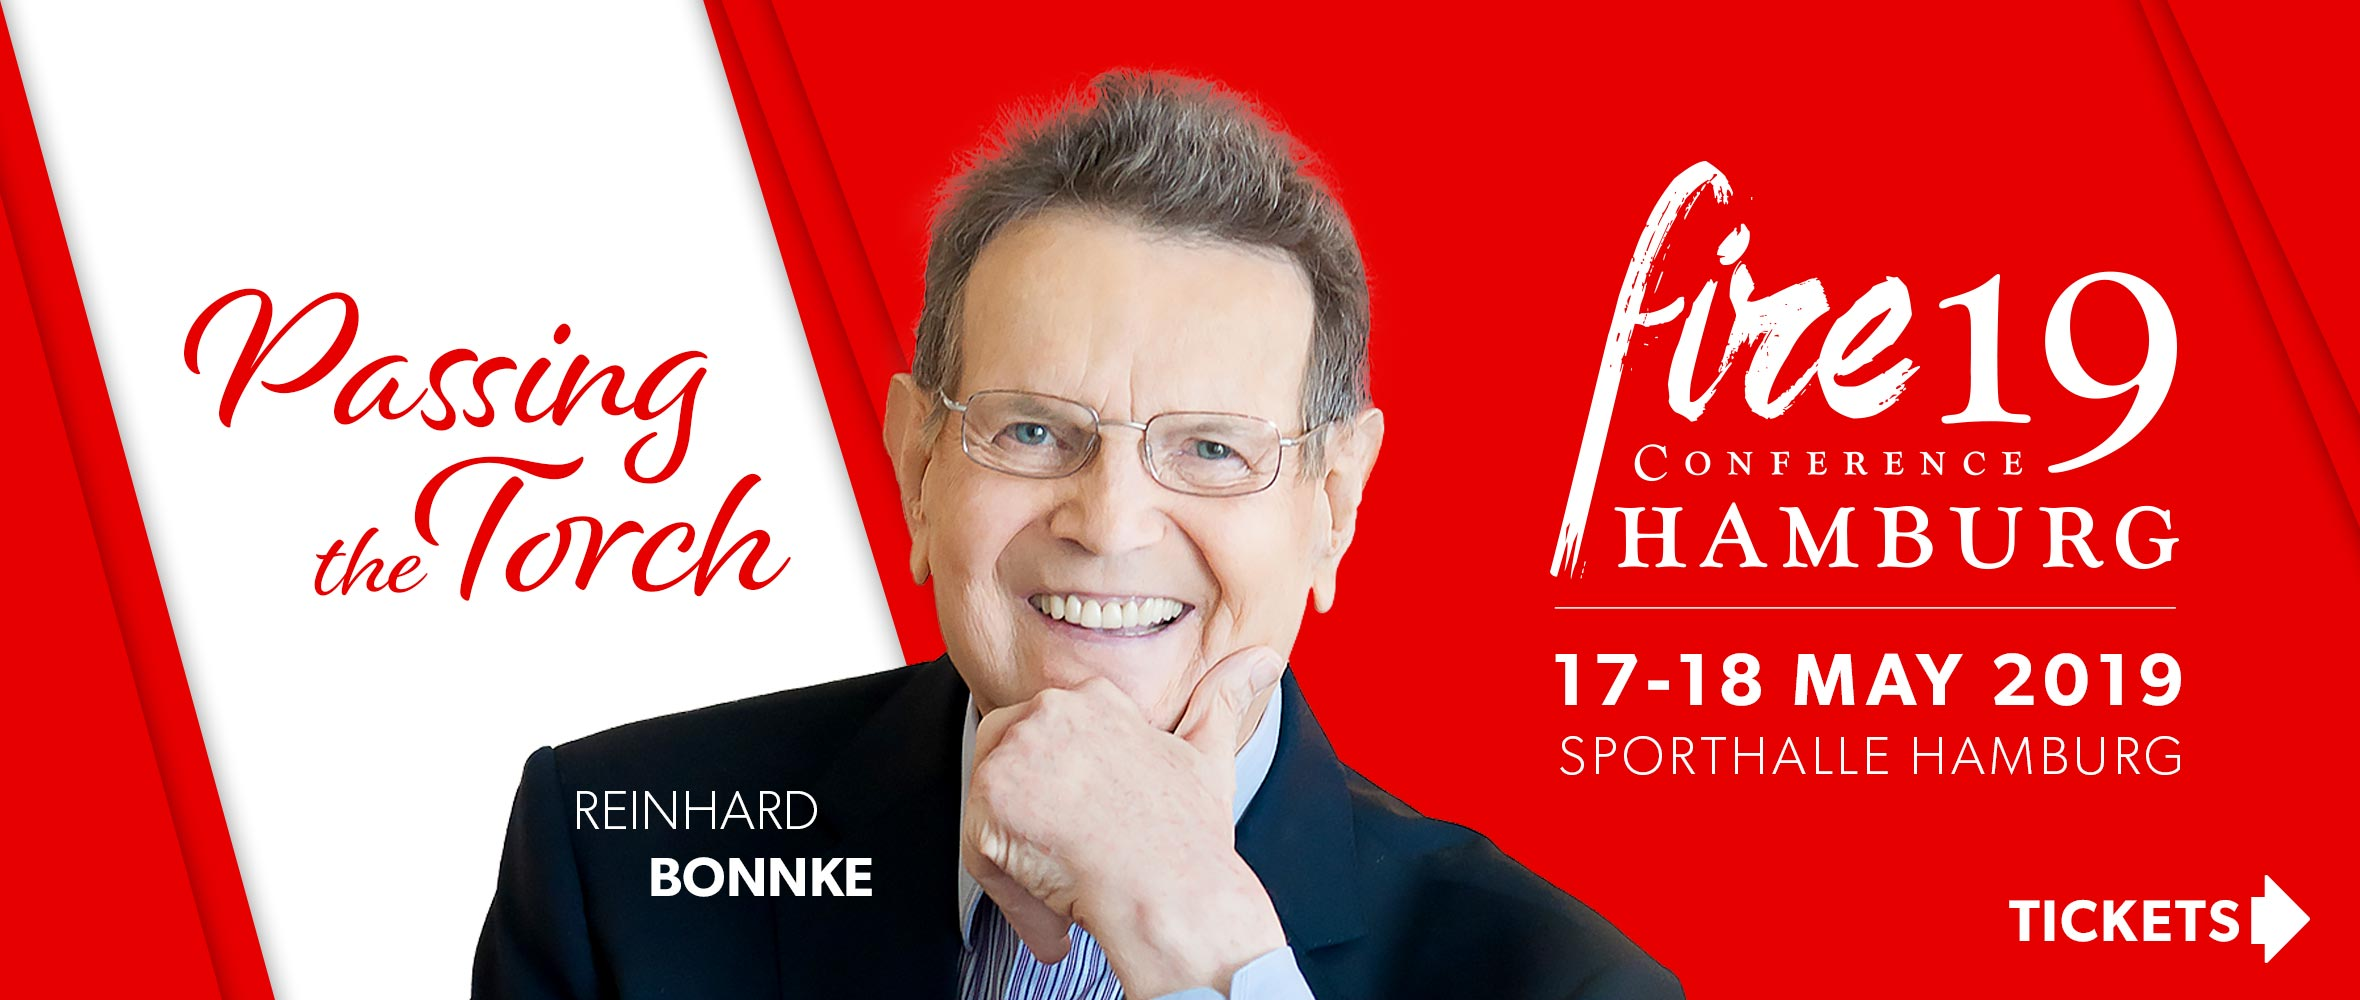 Fire19 Conference Hamburg - with Reinhard Bonnke - Passing the Torch